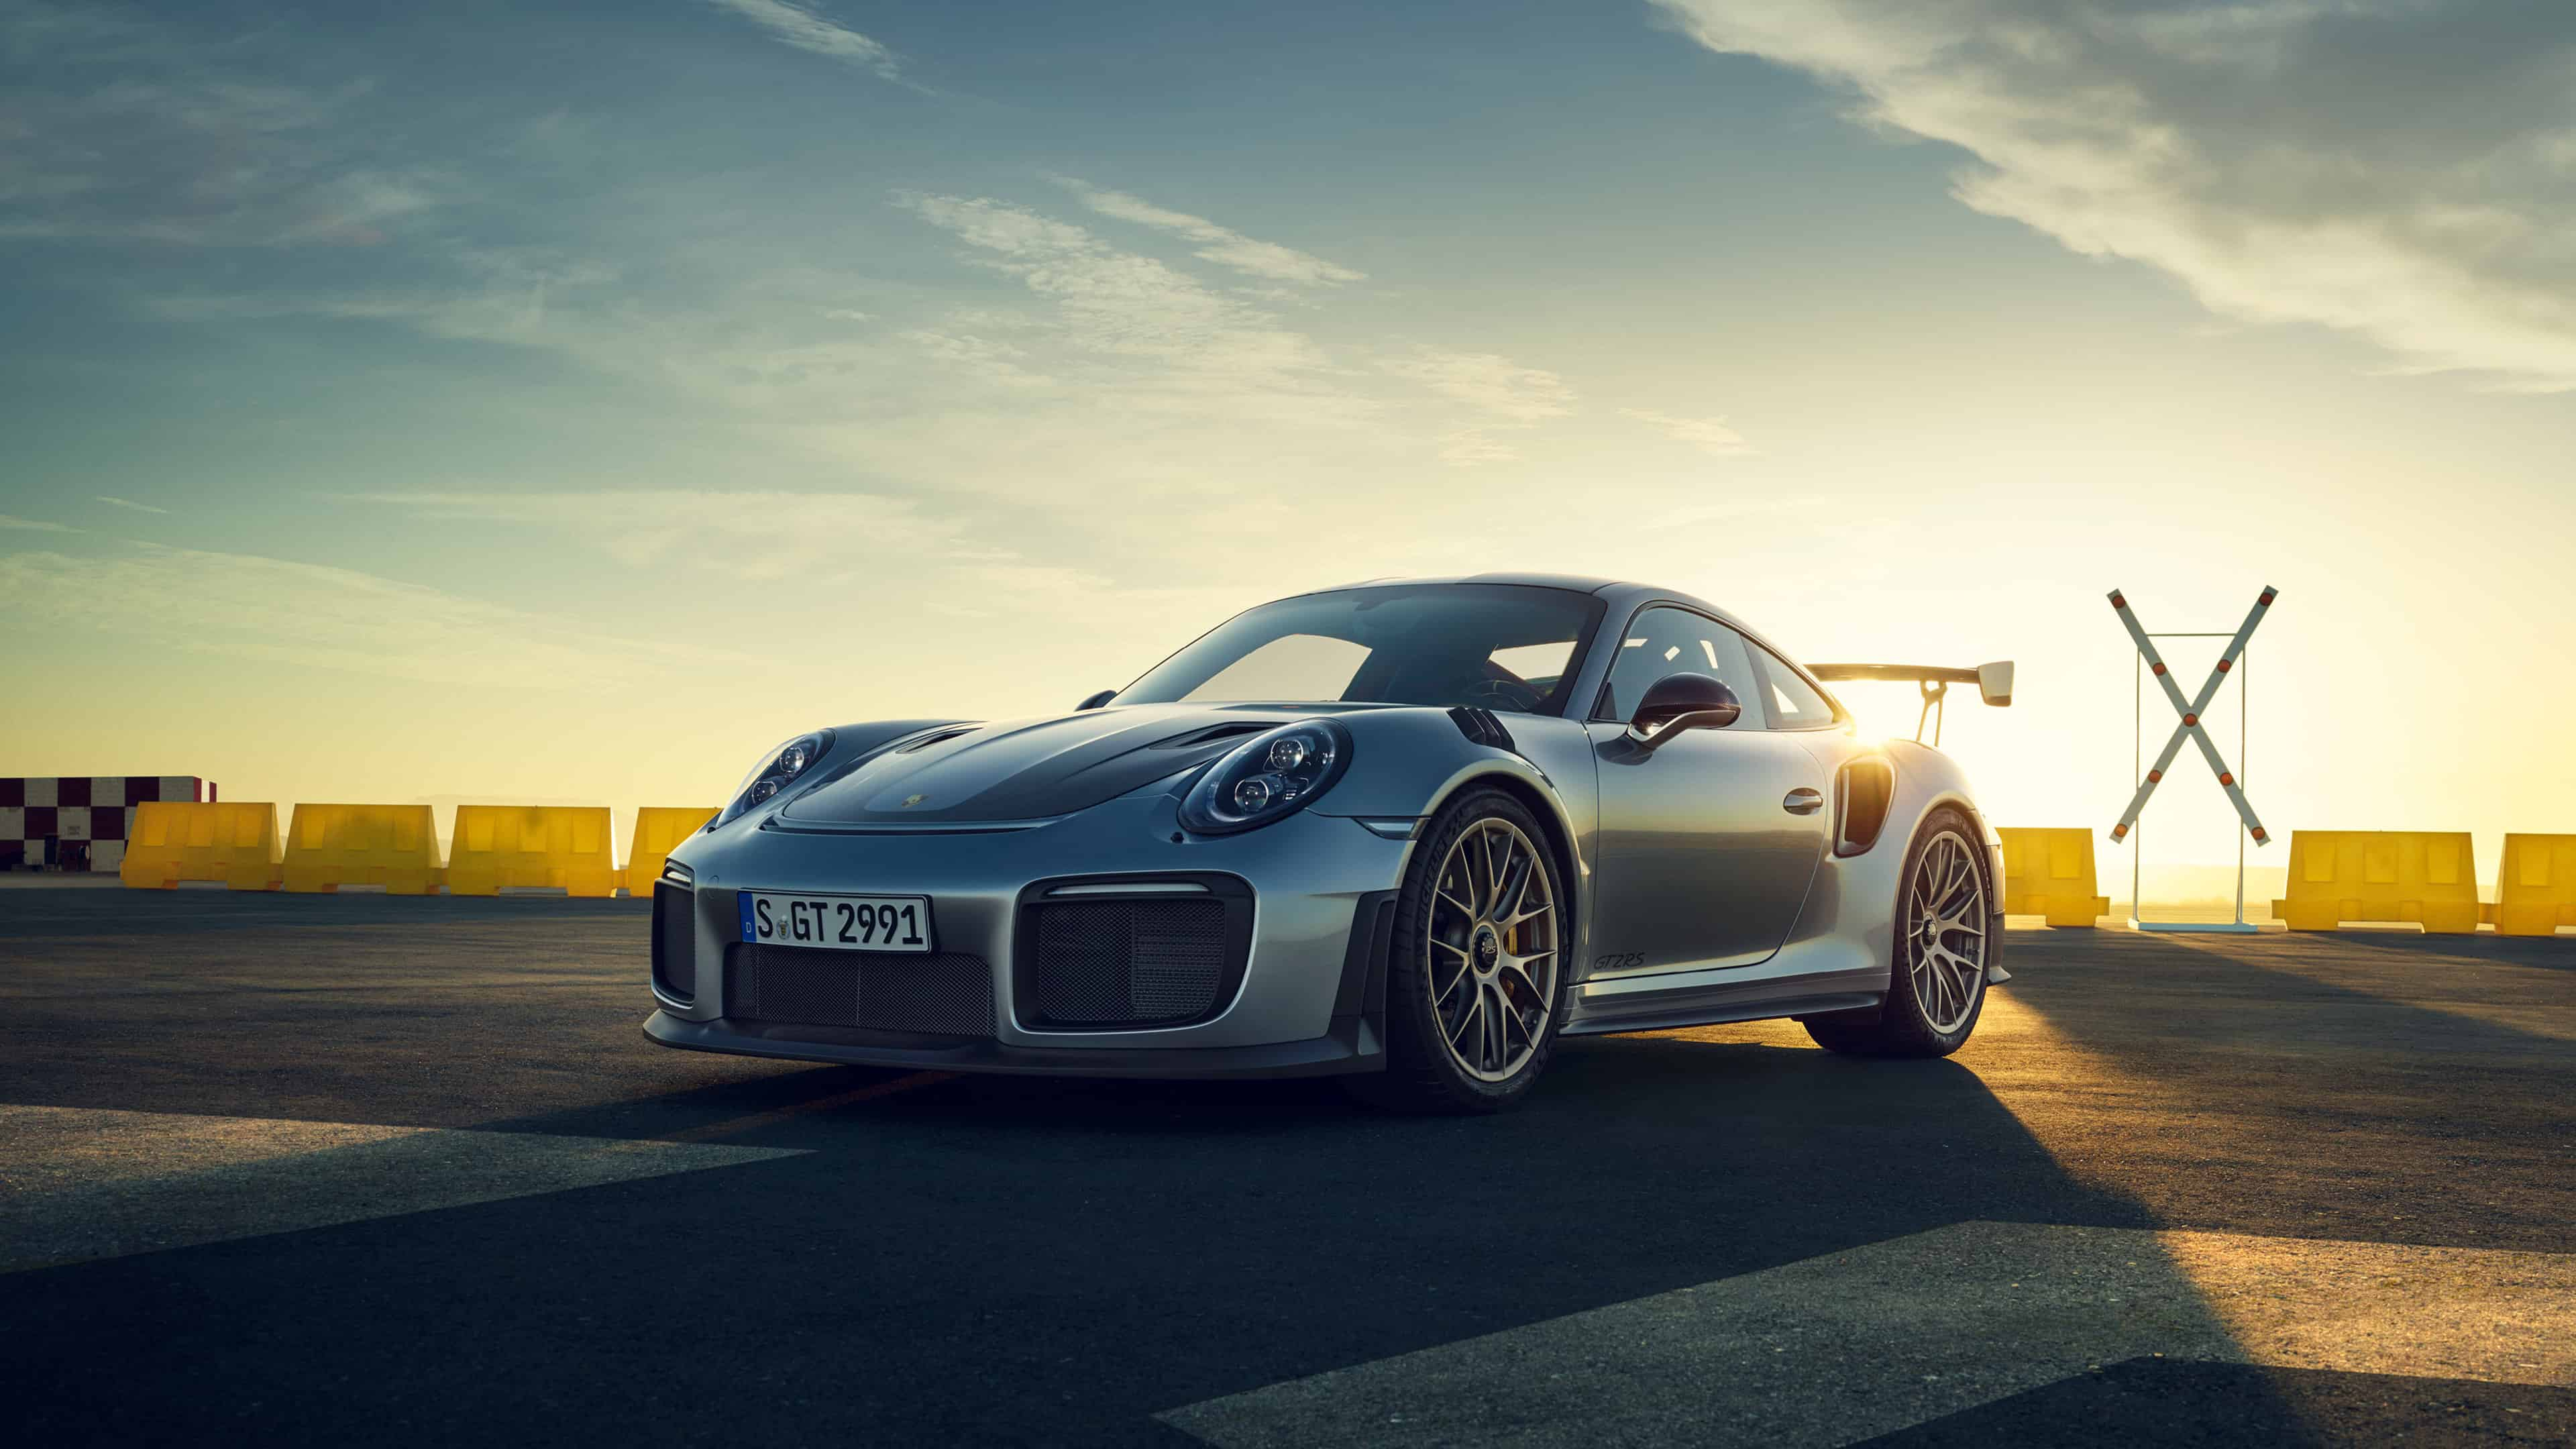 Porsche 911 GT2 RS UHD 4K Wallpaper